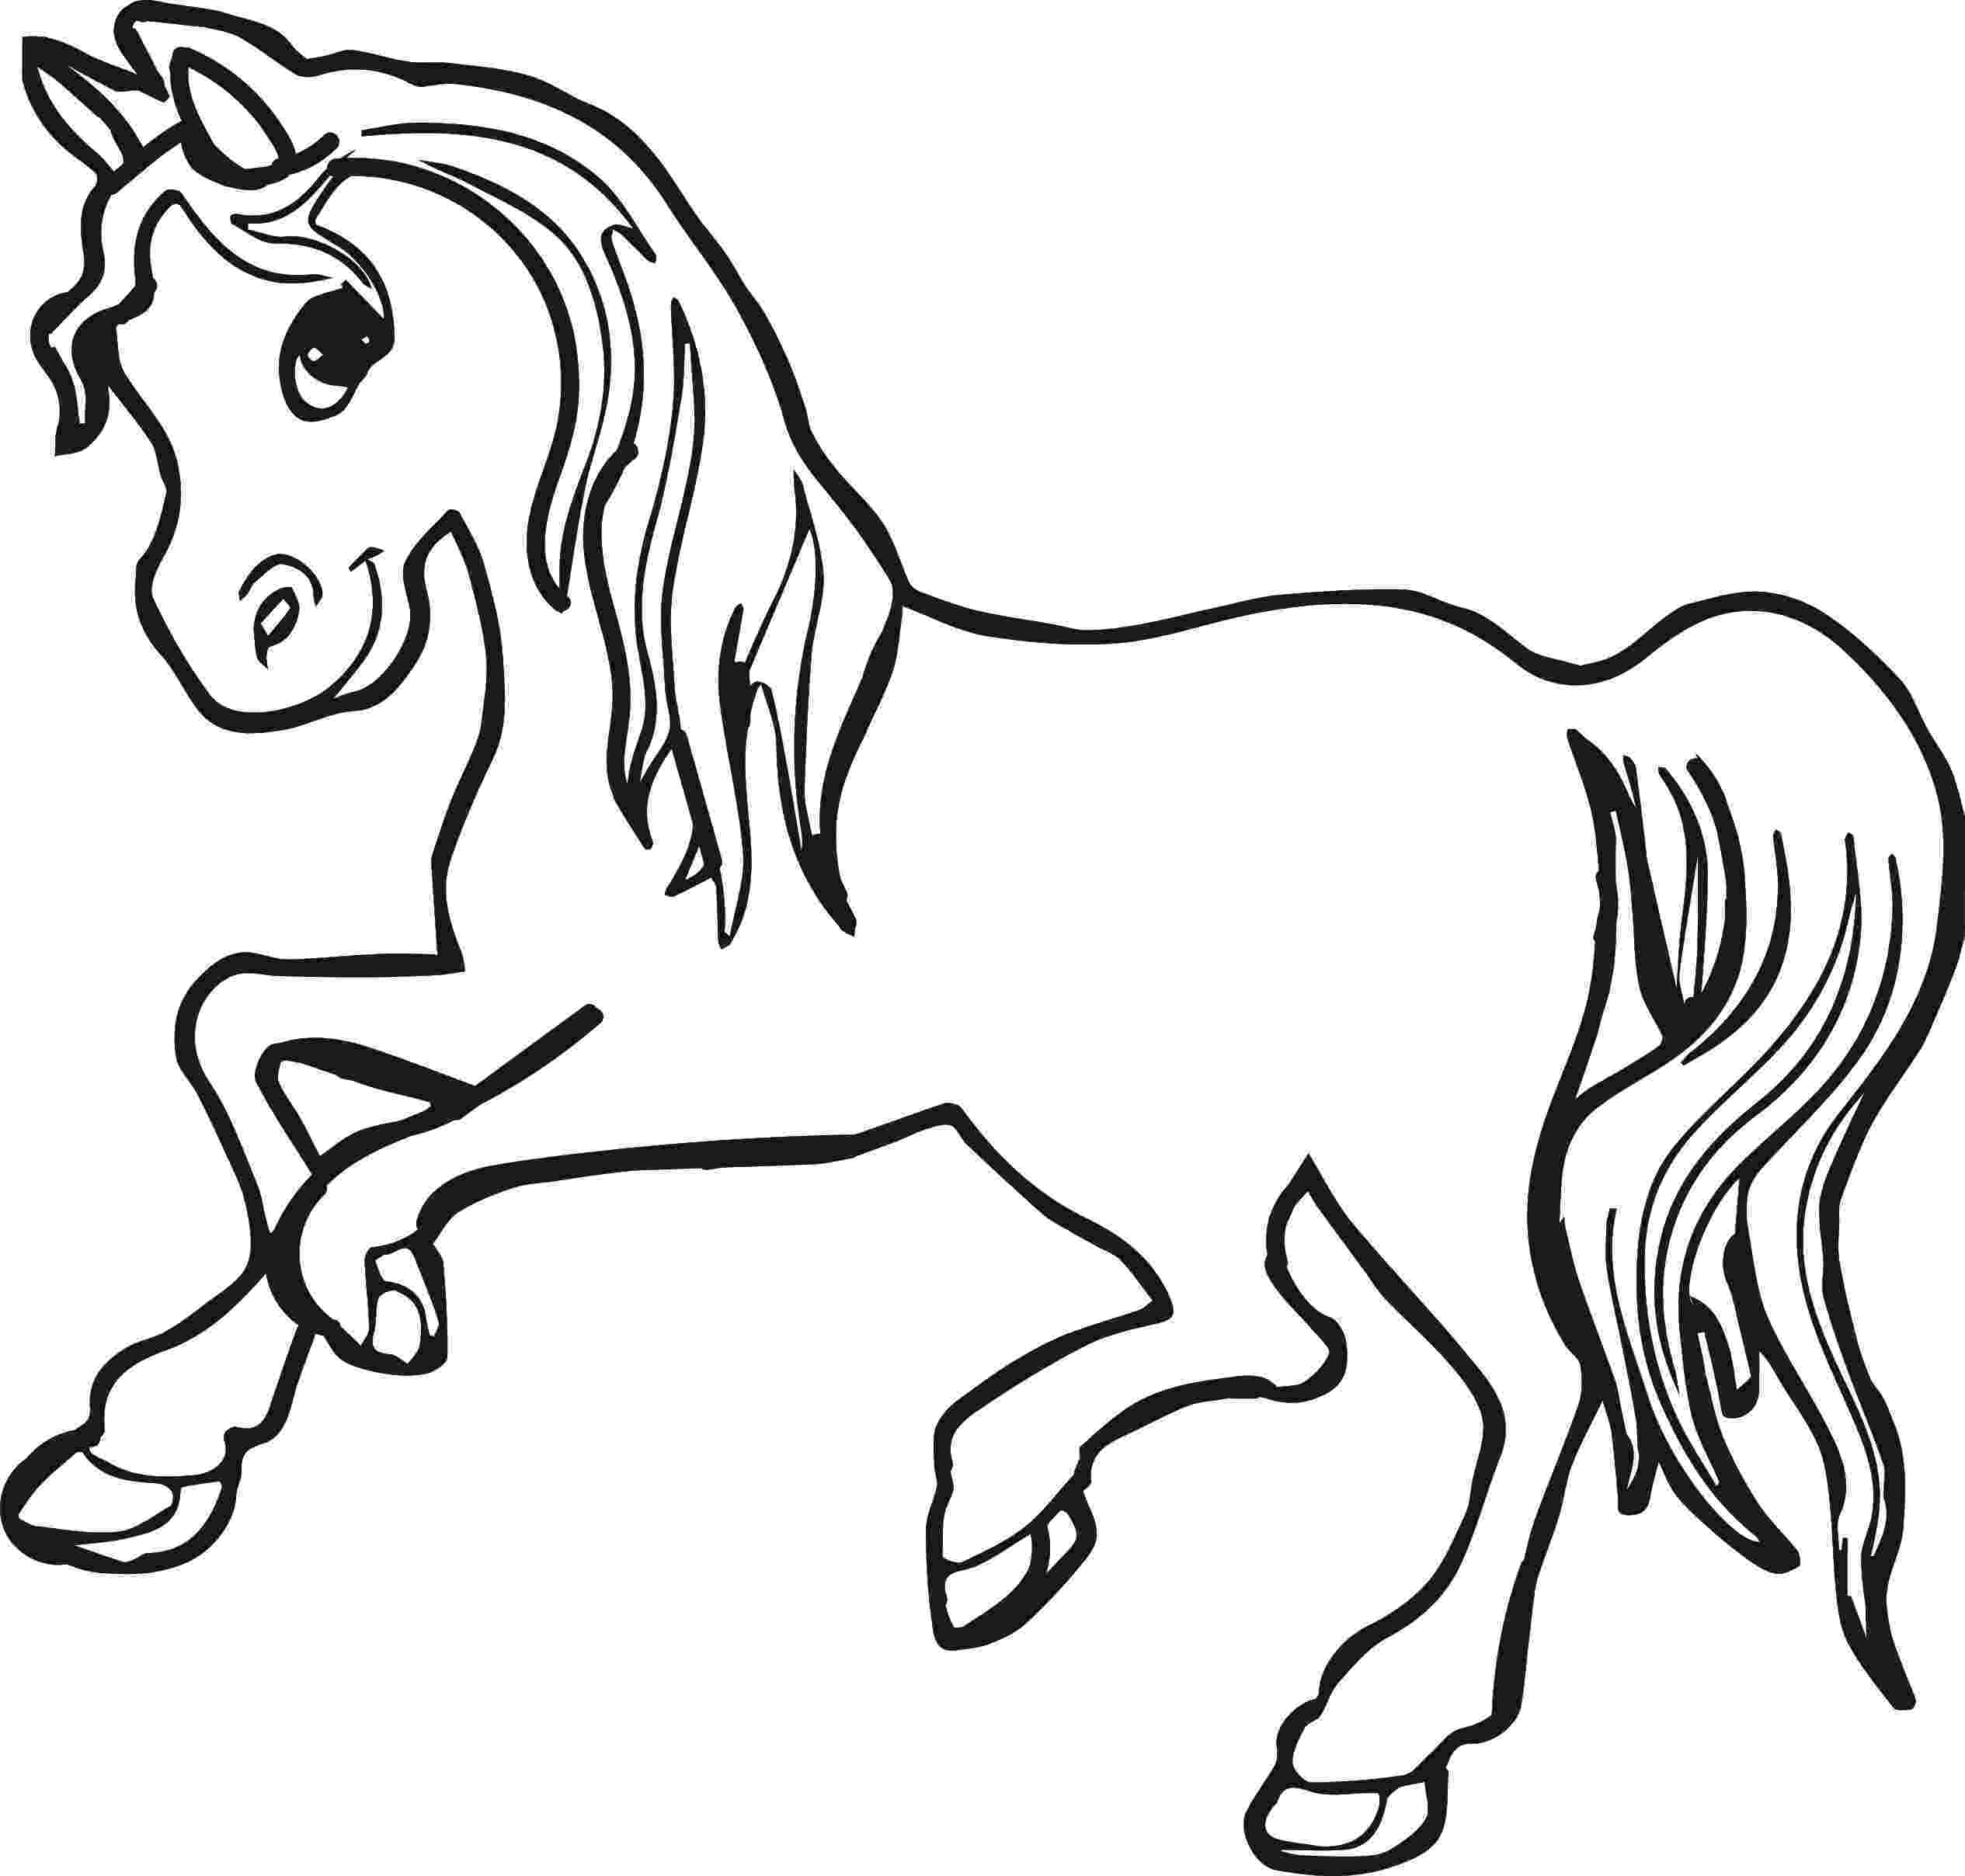 horse pictures for kids fun horse coloring pages for your kids printable kids horse pictures for